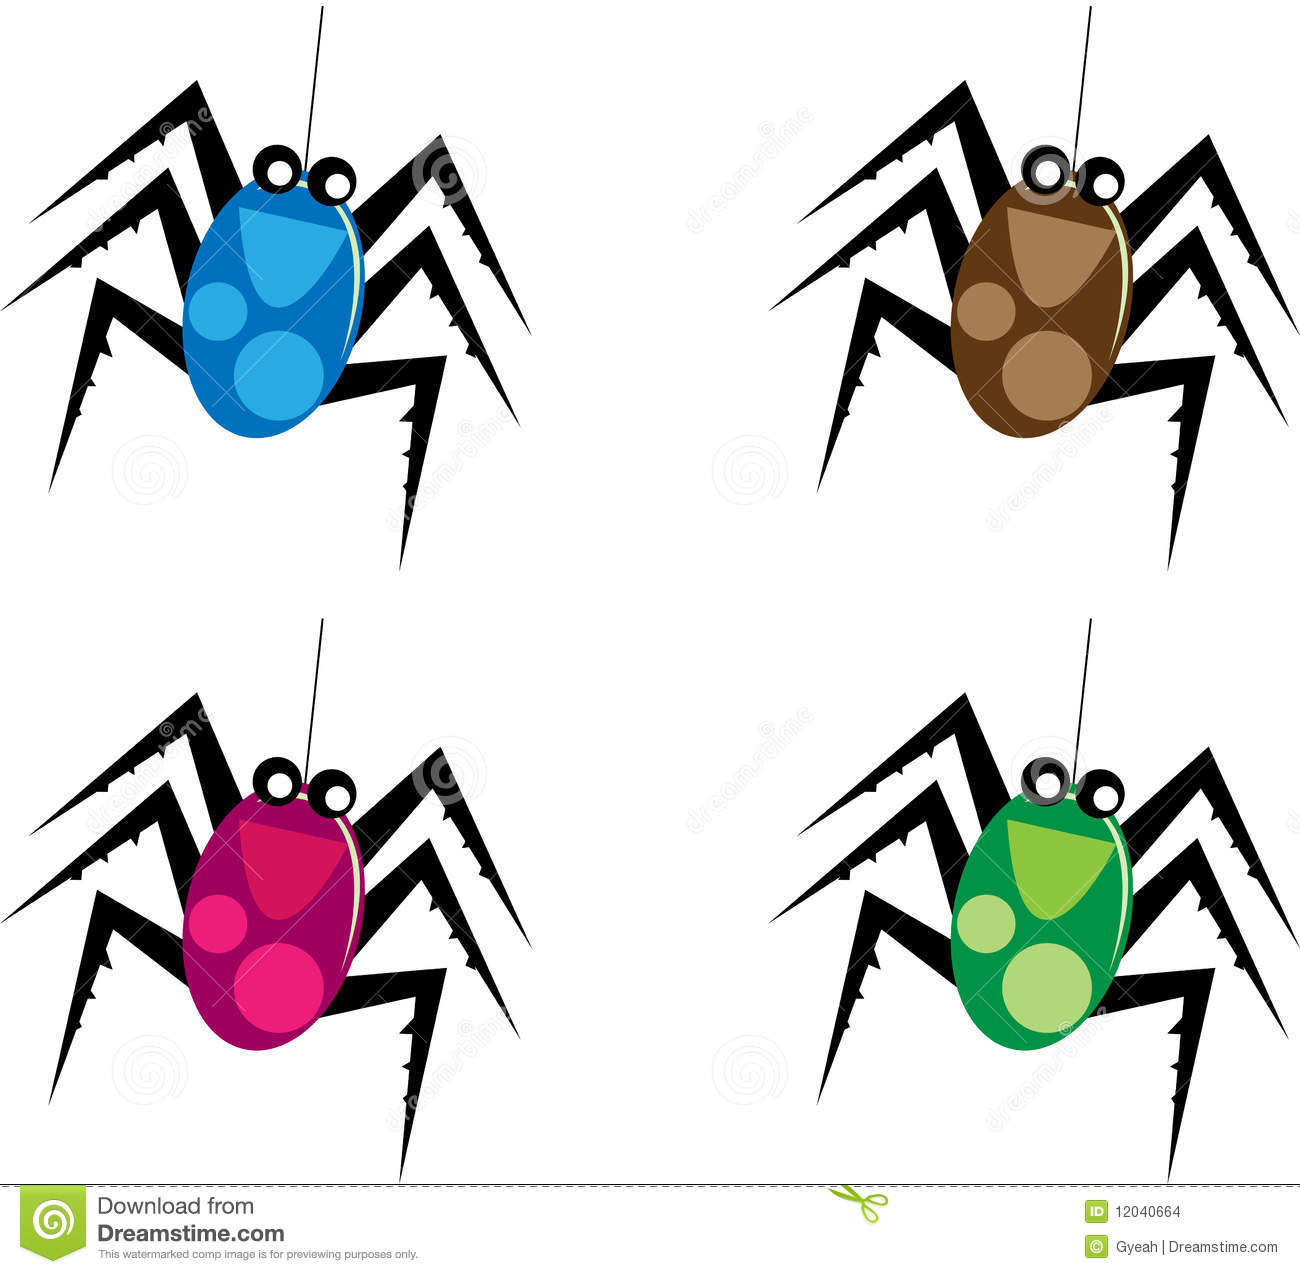 clip art illustration of a cartoon spider.